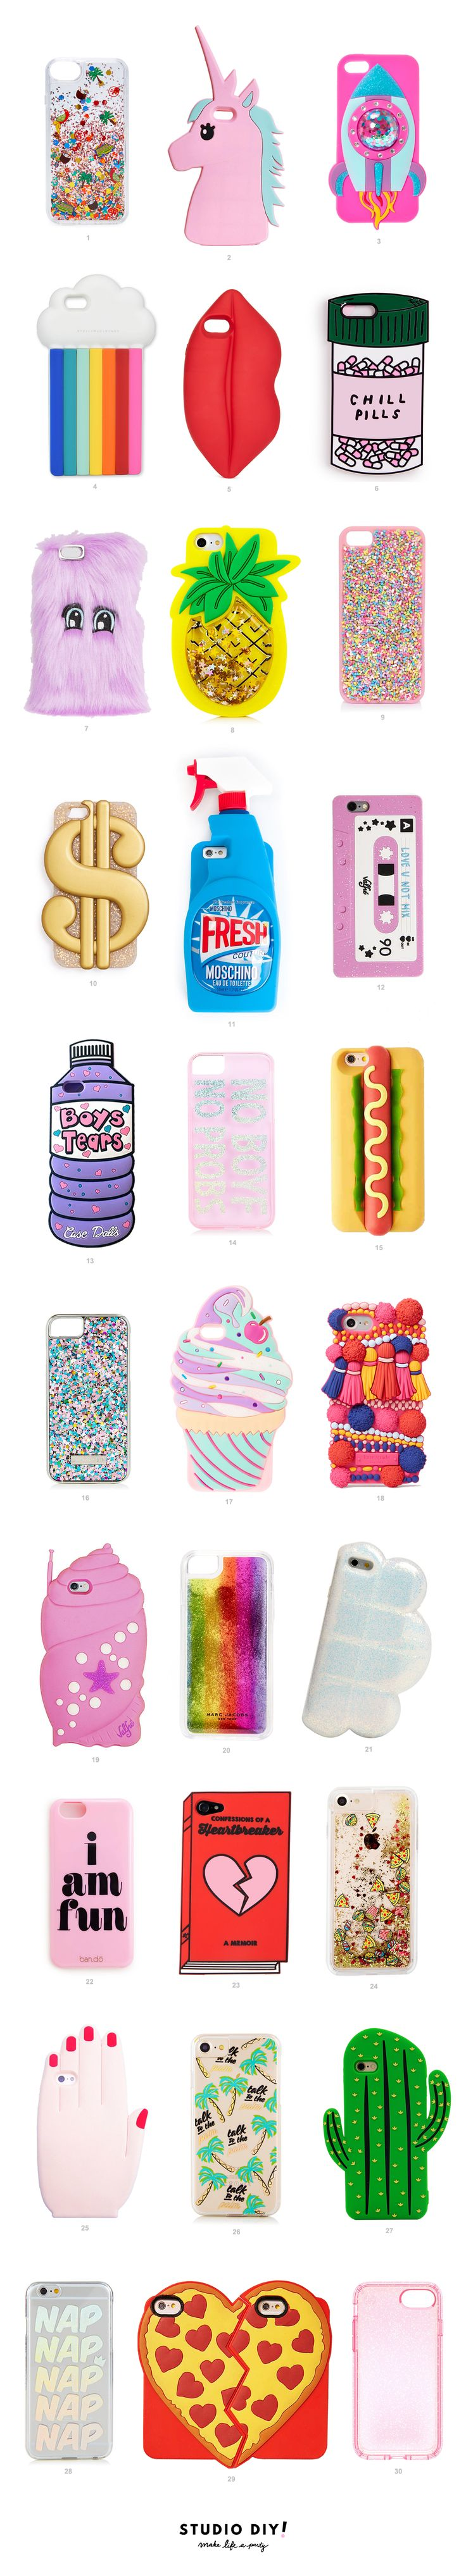 Sometimes I wish I had every size phone, so I could buy every ridiculously amazing phone case I come across. There are SO. MANY. good ones out there, from sparkly glitter ones to ridiculous shapes that I can't get enough of. Rounded up 30 (yes, 30, how's a girl to choose!?) of my faves today…